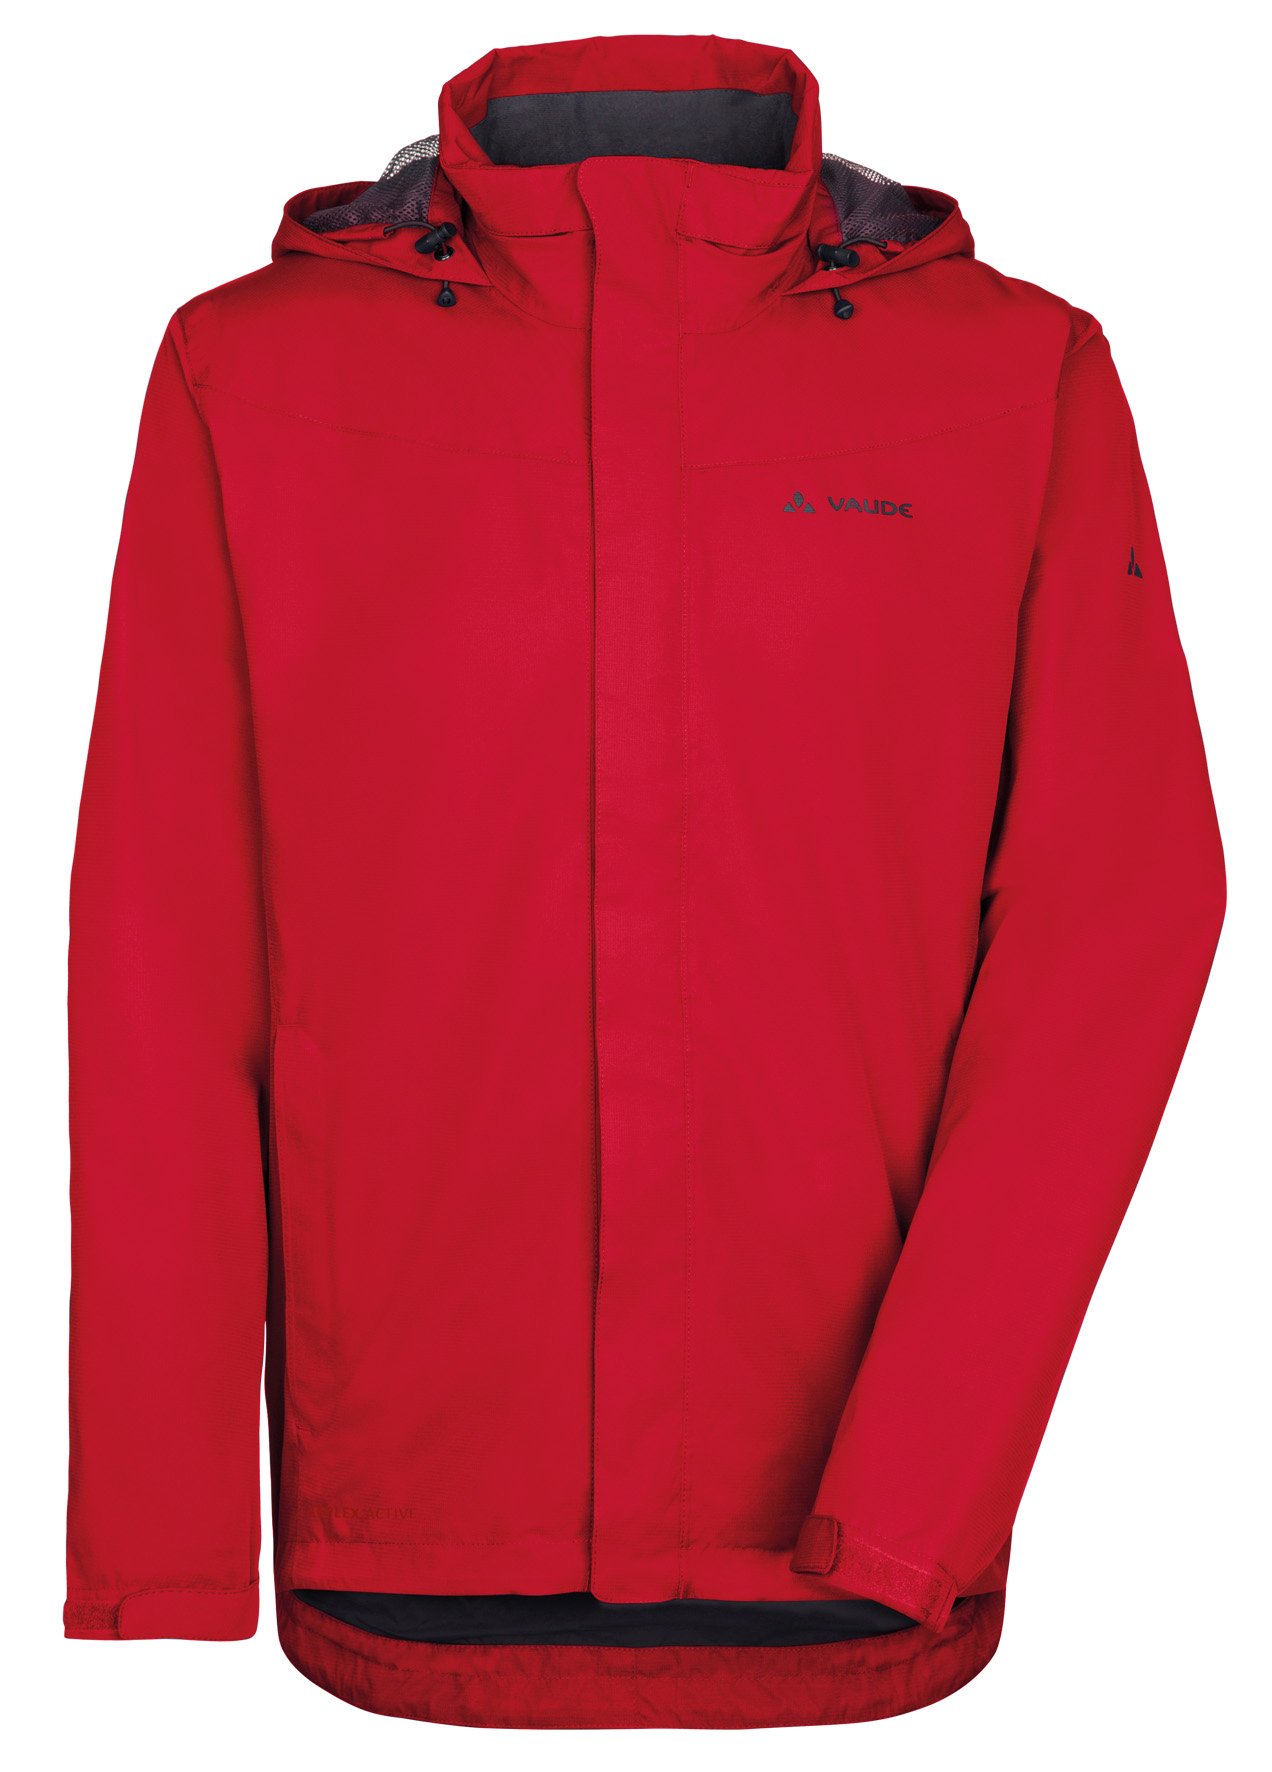 VAUDE Men´s Escape Bike Light Jacket red Größe L - schneider-sports